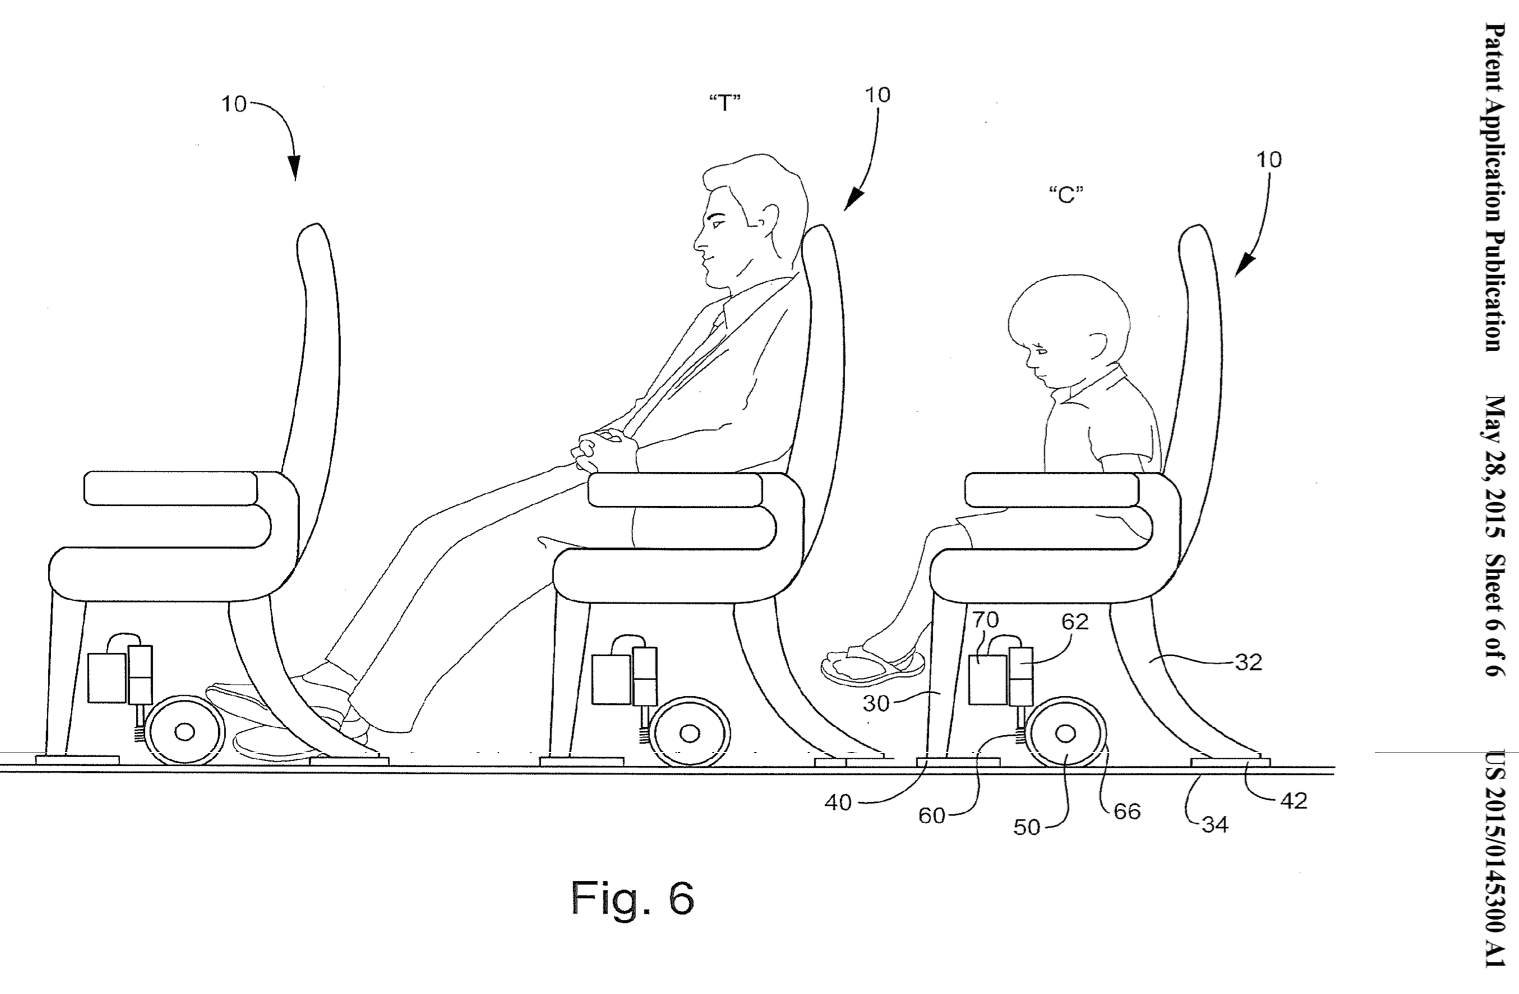 Sensational Patent Would Have Airlines Sort Passengers By Height Then Gmtry Best Dining Table And Chair Ideas Images Gmtryco